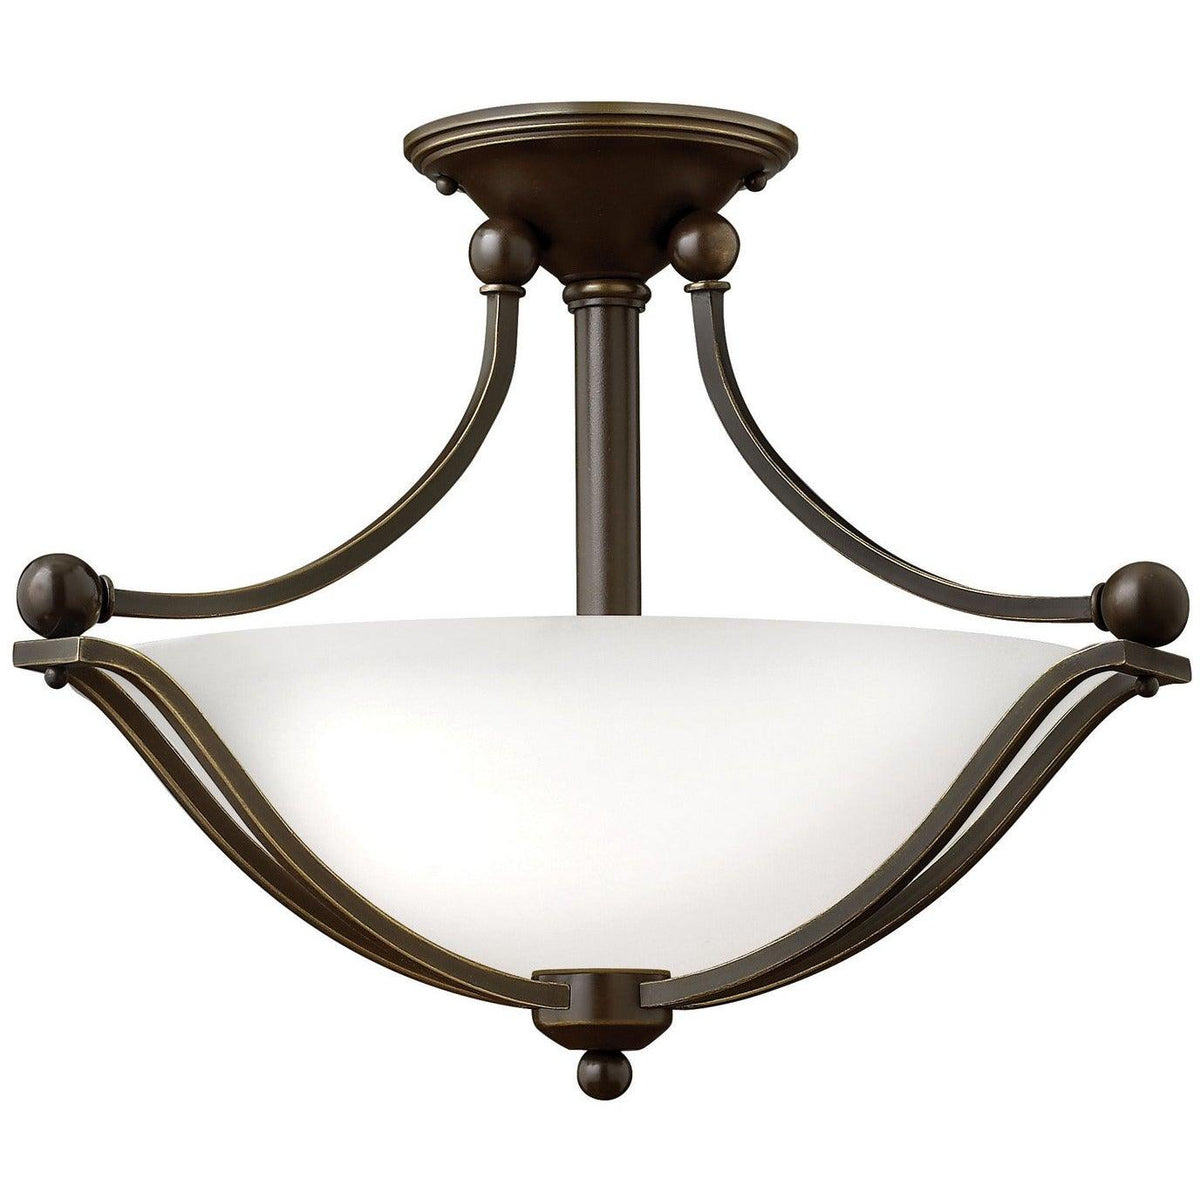 Hinkley Canada - 4651OB-OPAL - Two Light Semi-Flush Mount - Bolla - Olde Bronze With Opal Glass